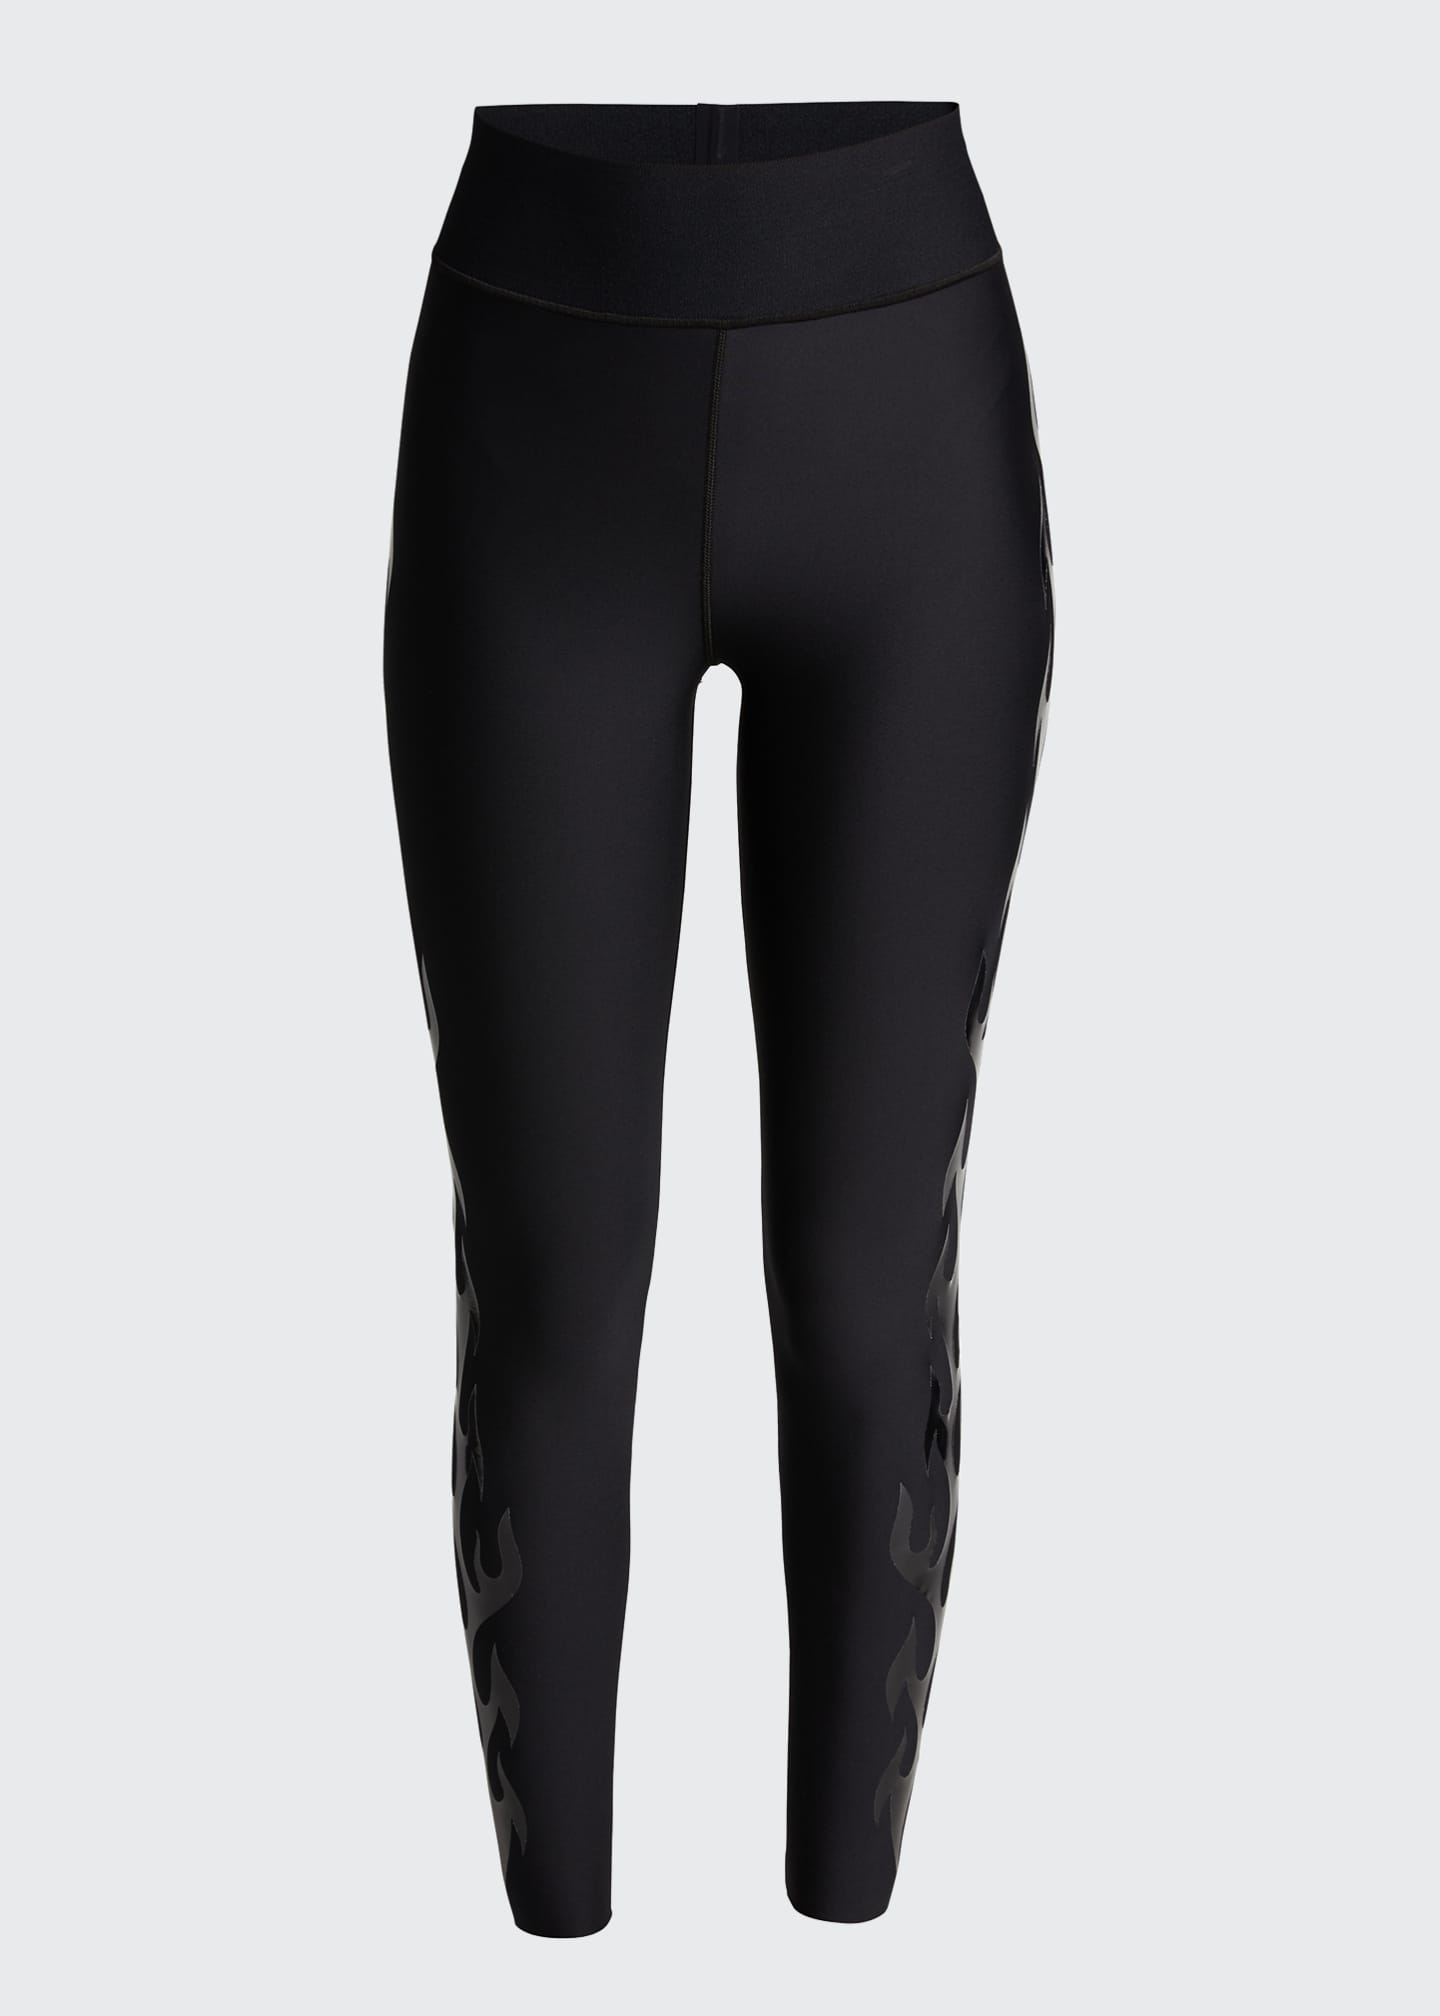 Image 5 of 5: Alight Ultra-High Performance Leggings